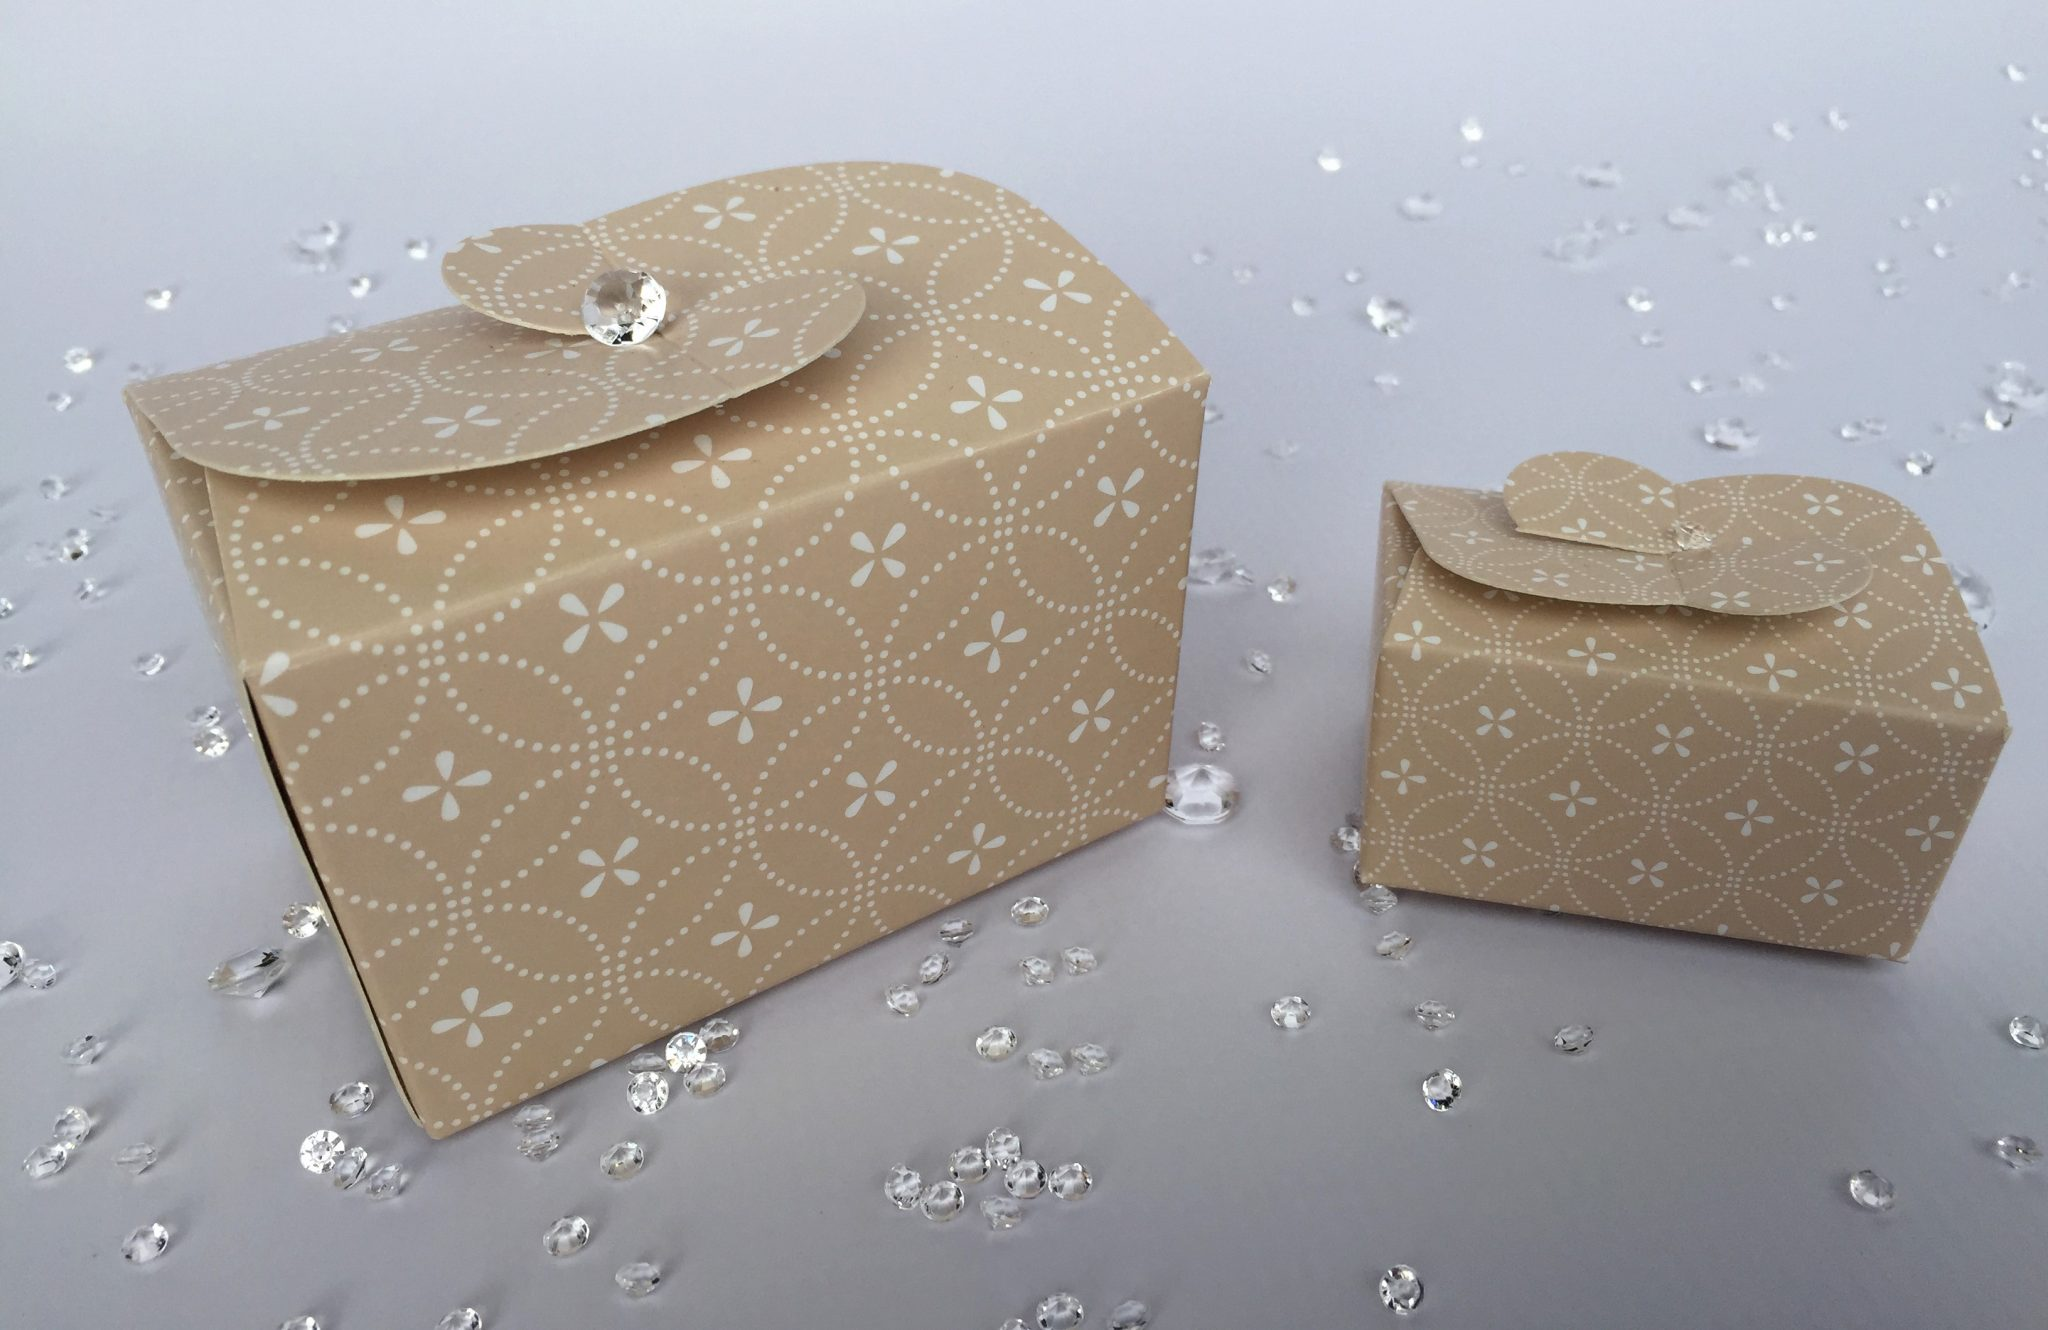 Ballotin Boxes with Butterfly Closing Clasp Cream Patterned